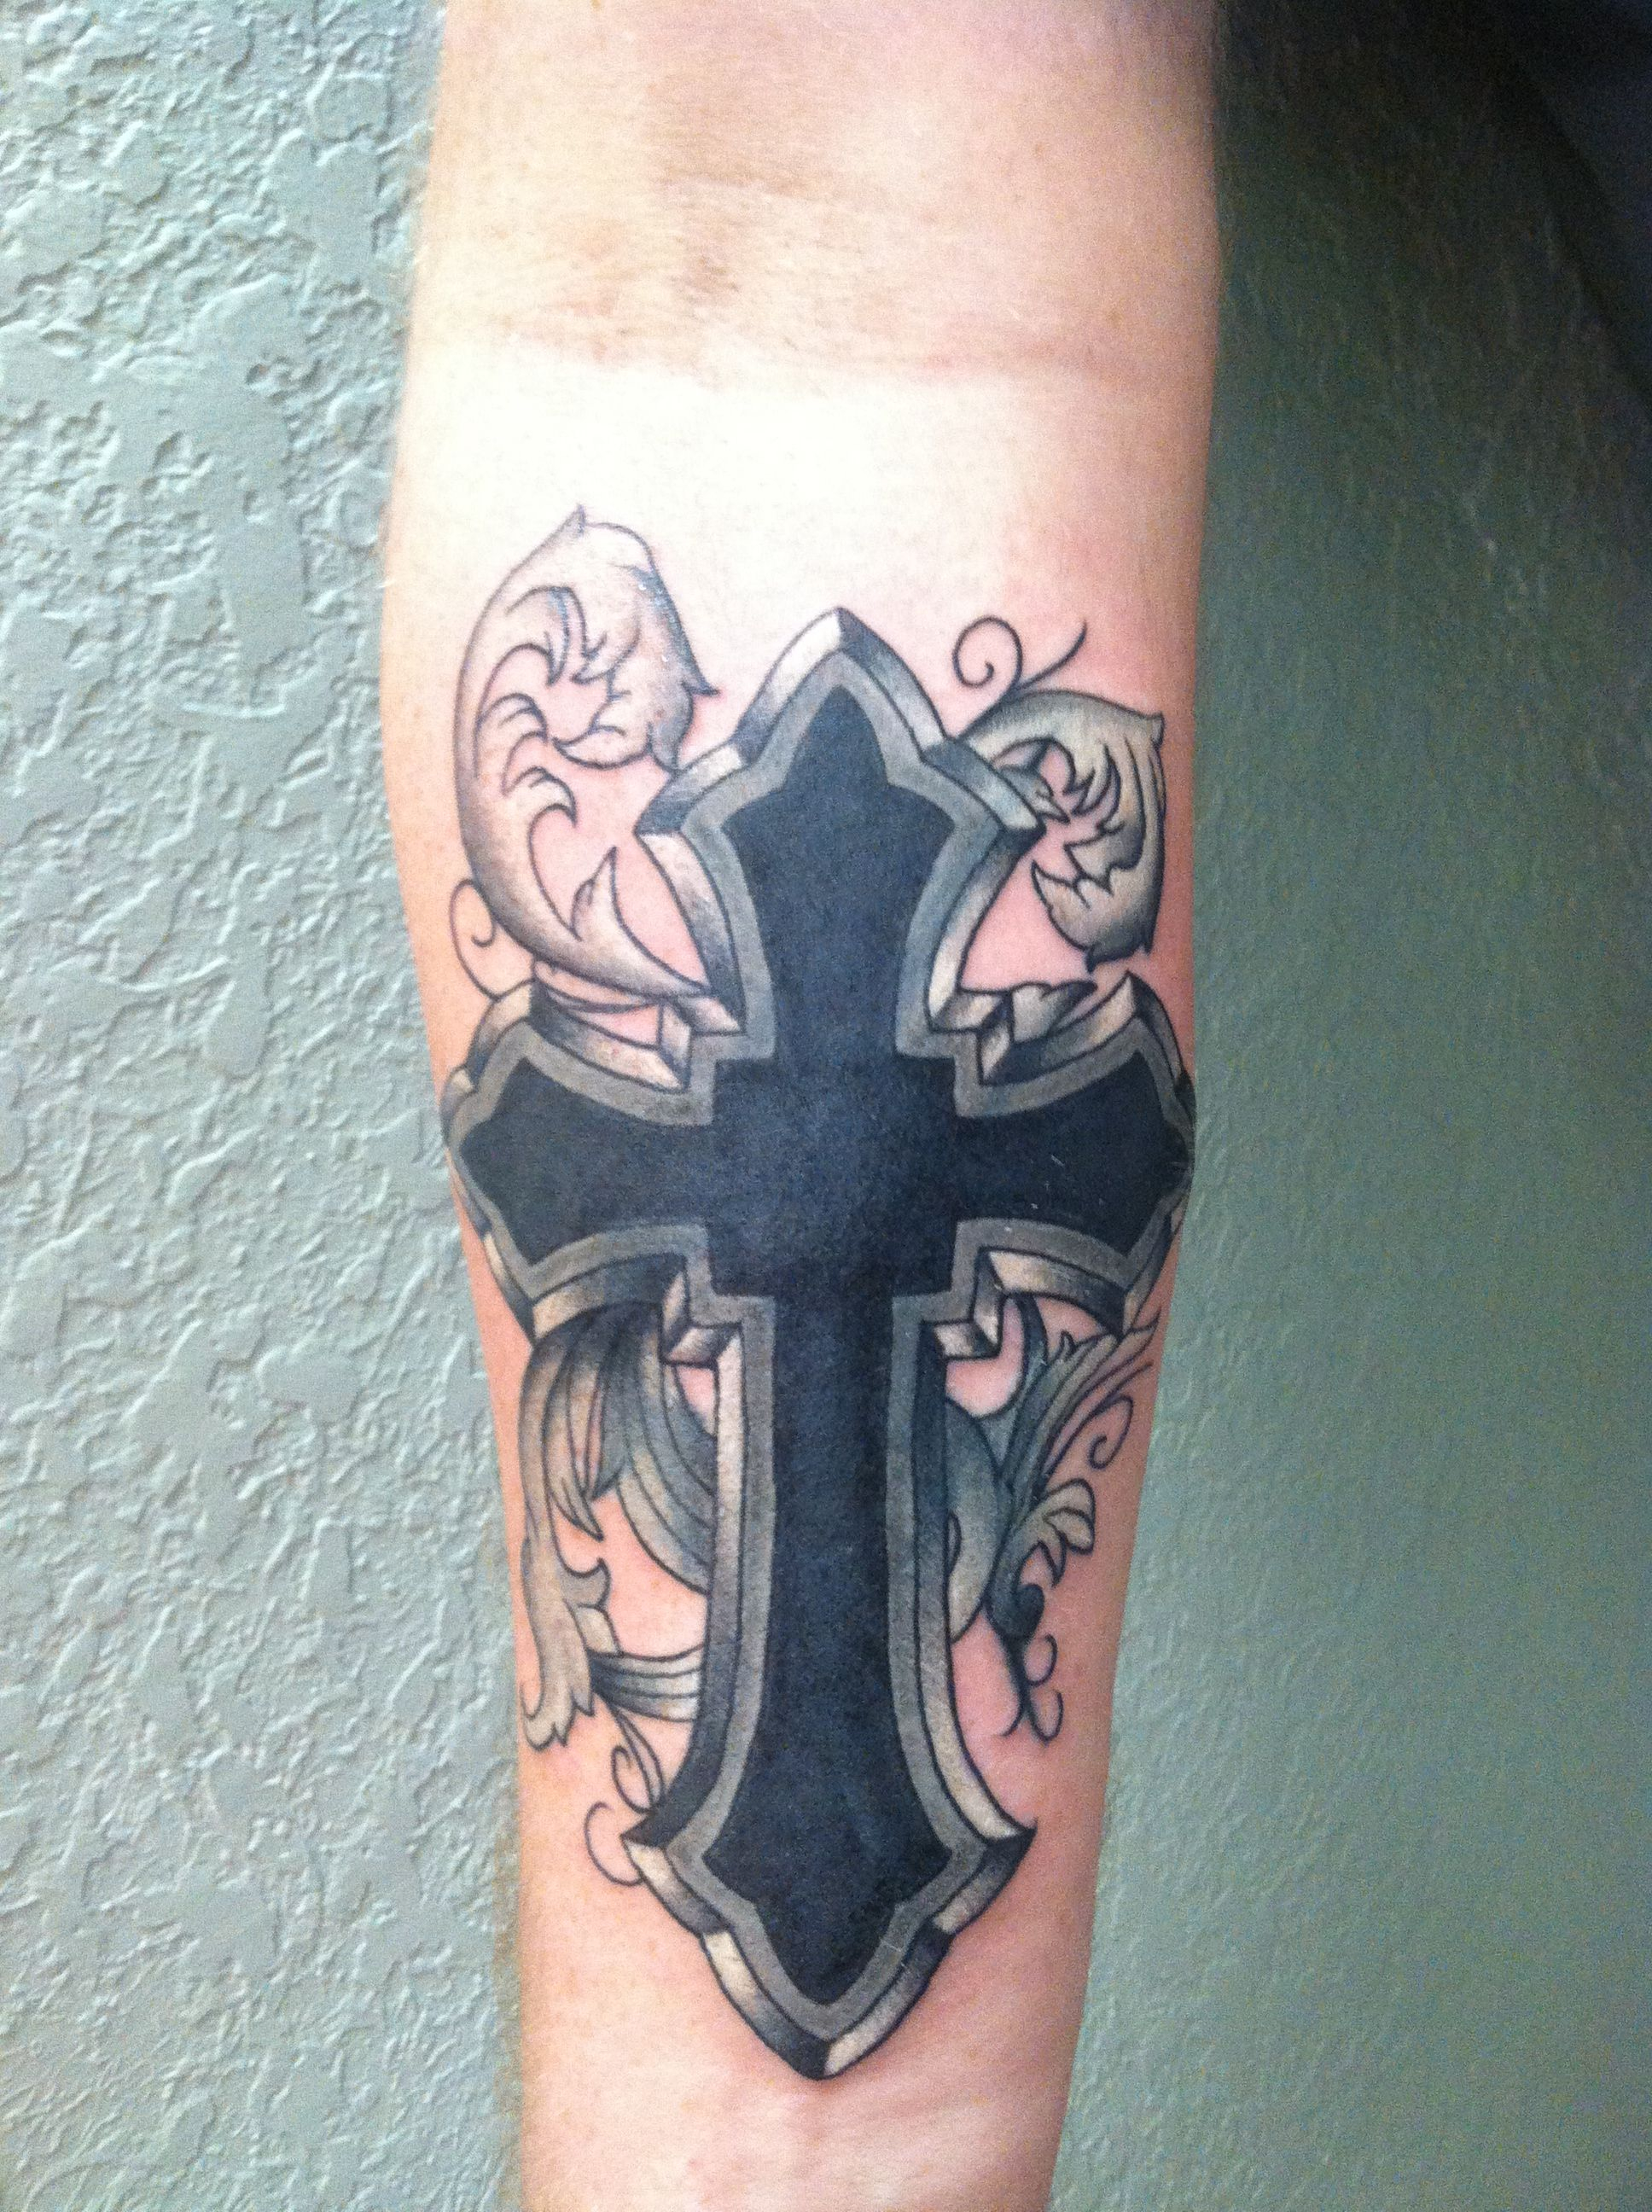 Tribal Cover Up Cross Tattoo Tattoos Binx Celtic Cross intended for size 1936 X 2592